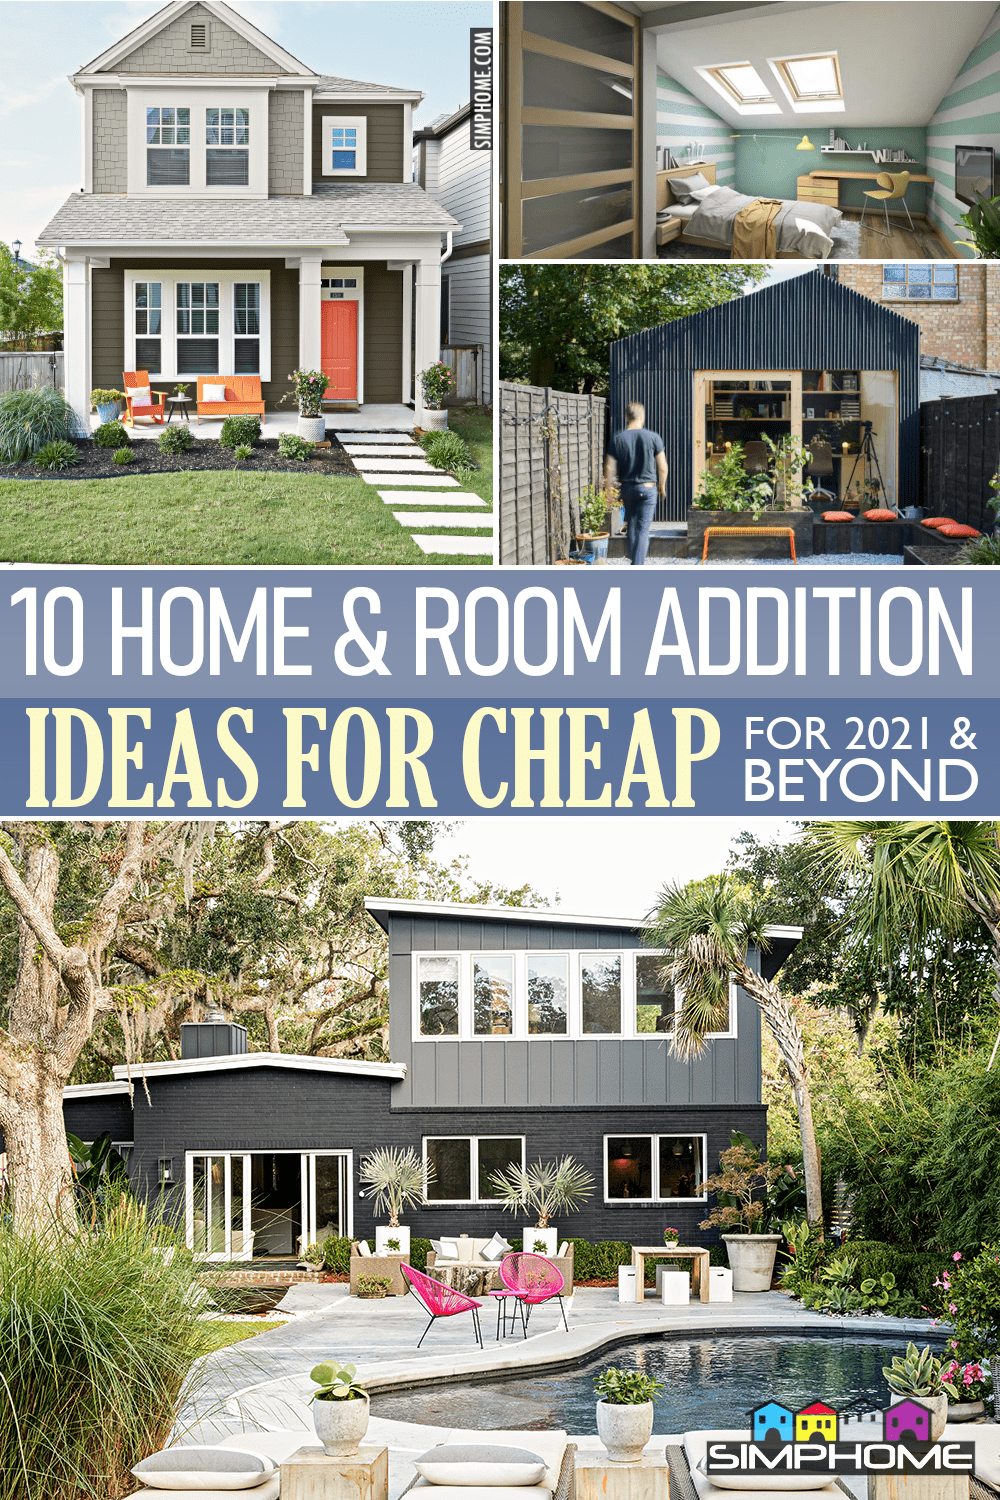 10 home and room addition ideas via Simphome.comFeatured